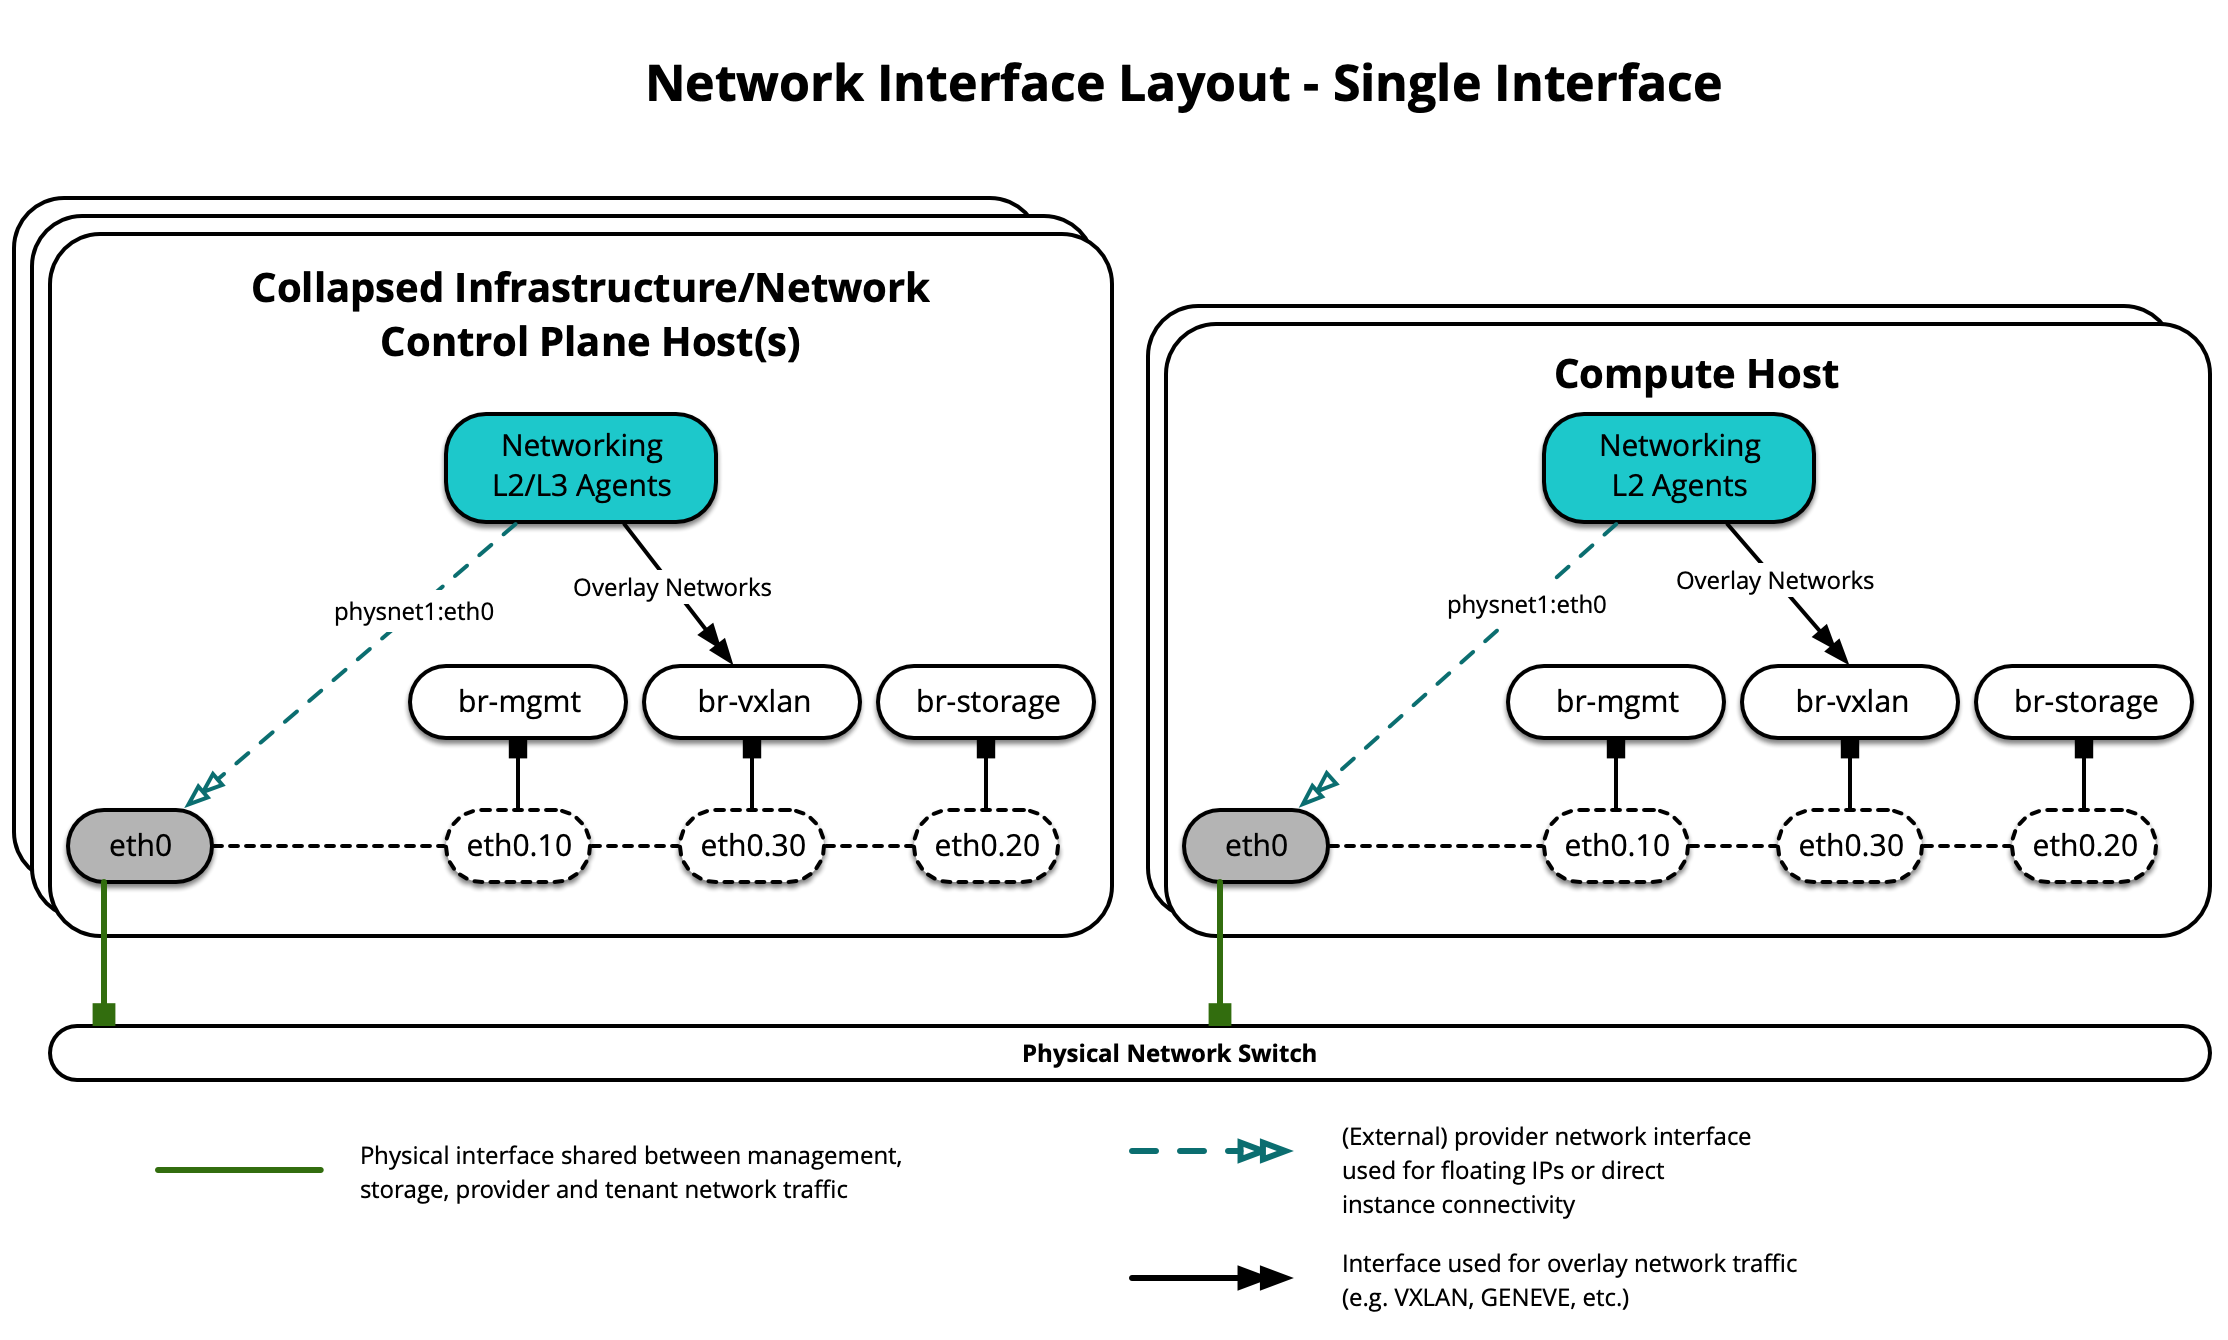 Network Interface Layout - Single Interface